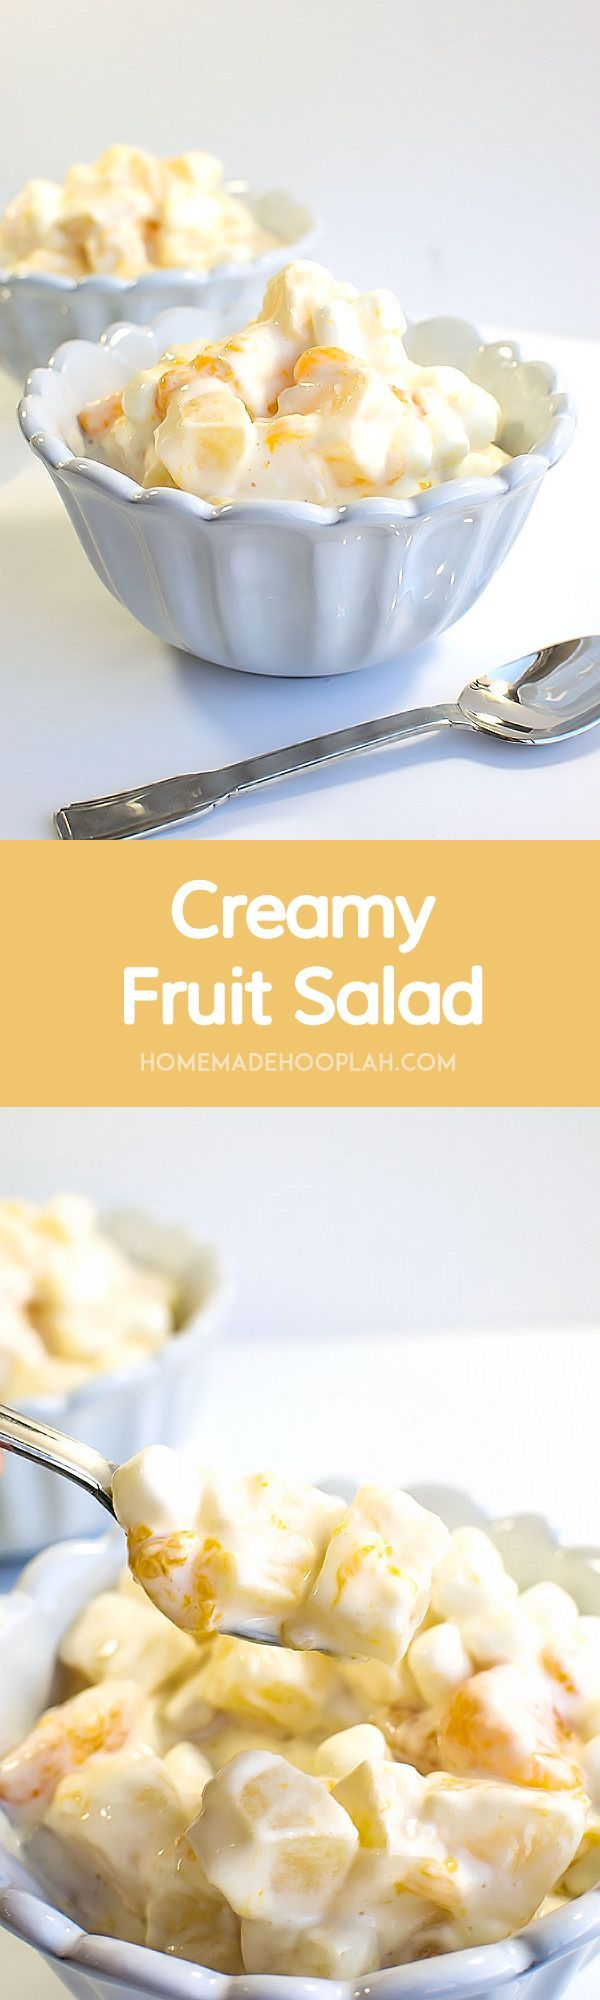 Creamy Fruit Salad! Bring on the warmer months with this light and sweet twist on fruit salad! | HomemadeHooplah.com